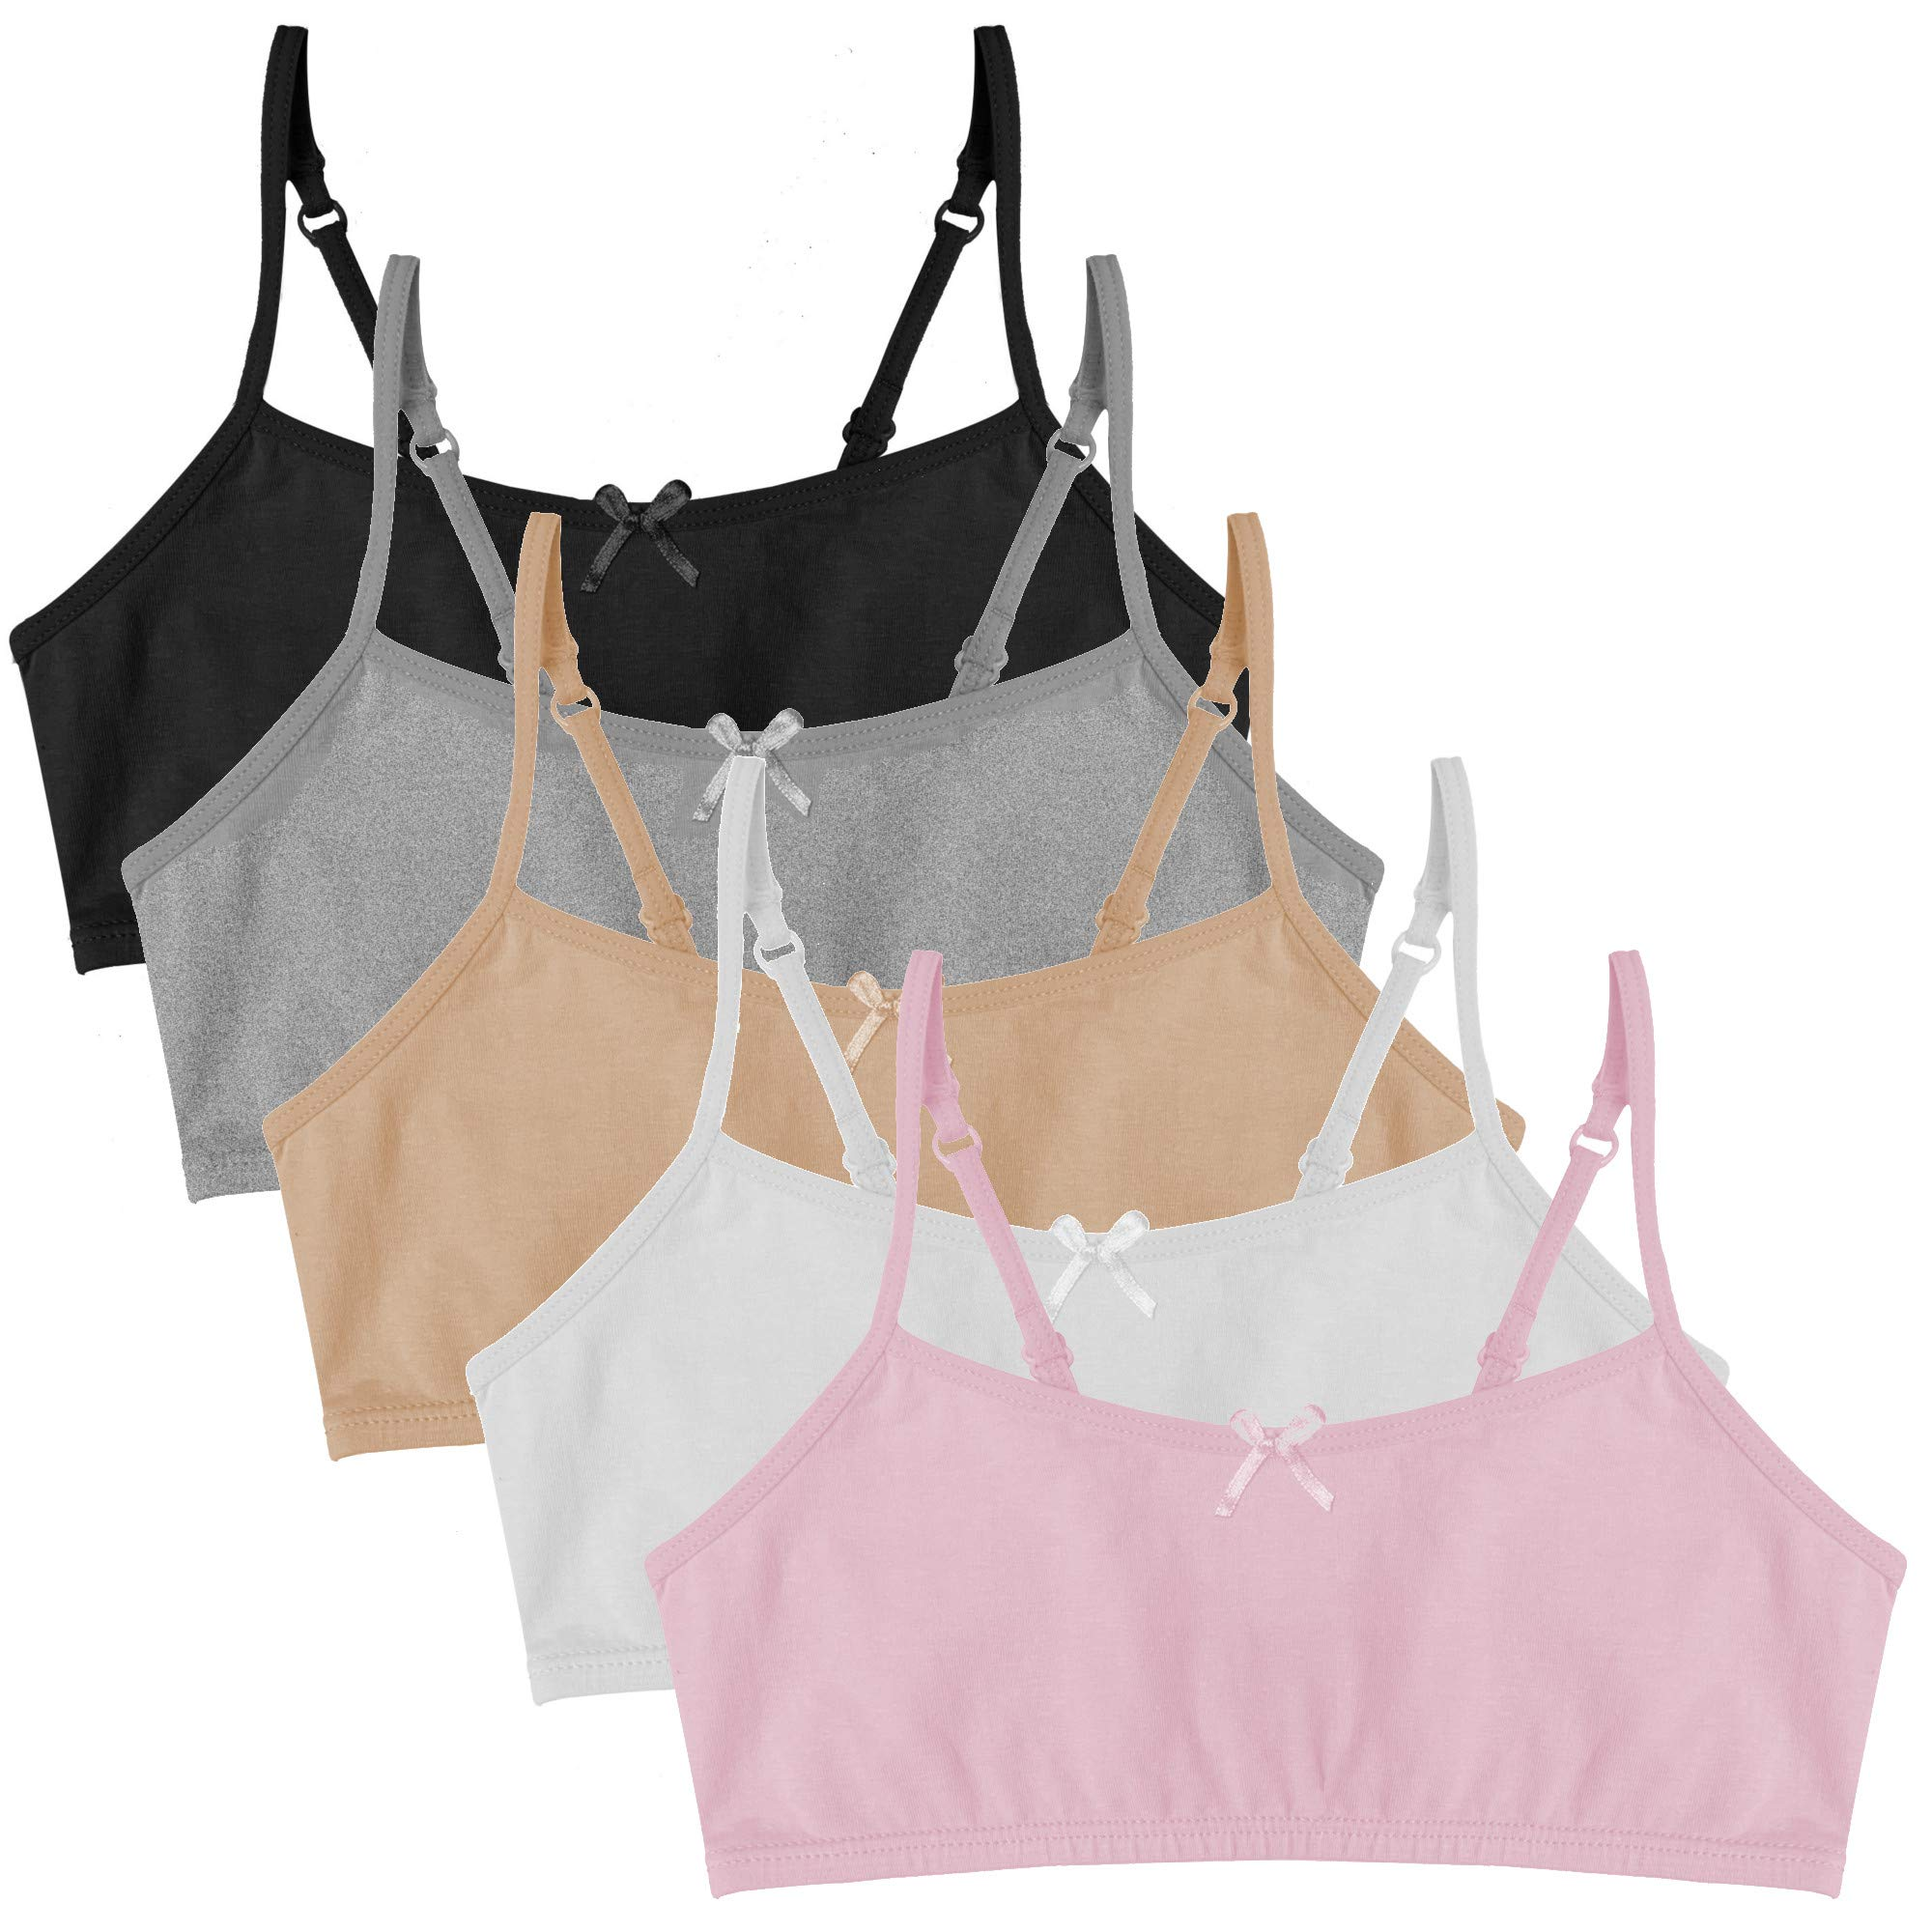 Popular Girl's Cotton Cami Crop Bra with Adjustable Straps - 5 Pack - Neutrals - Large (10/12) by Popular